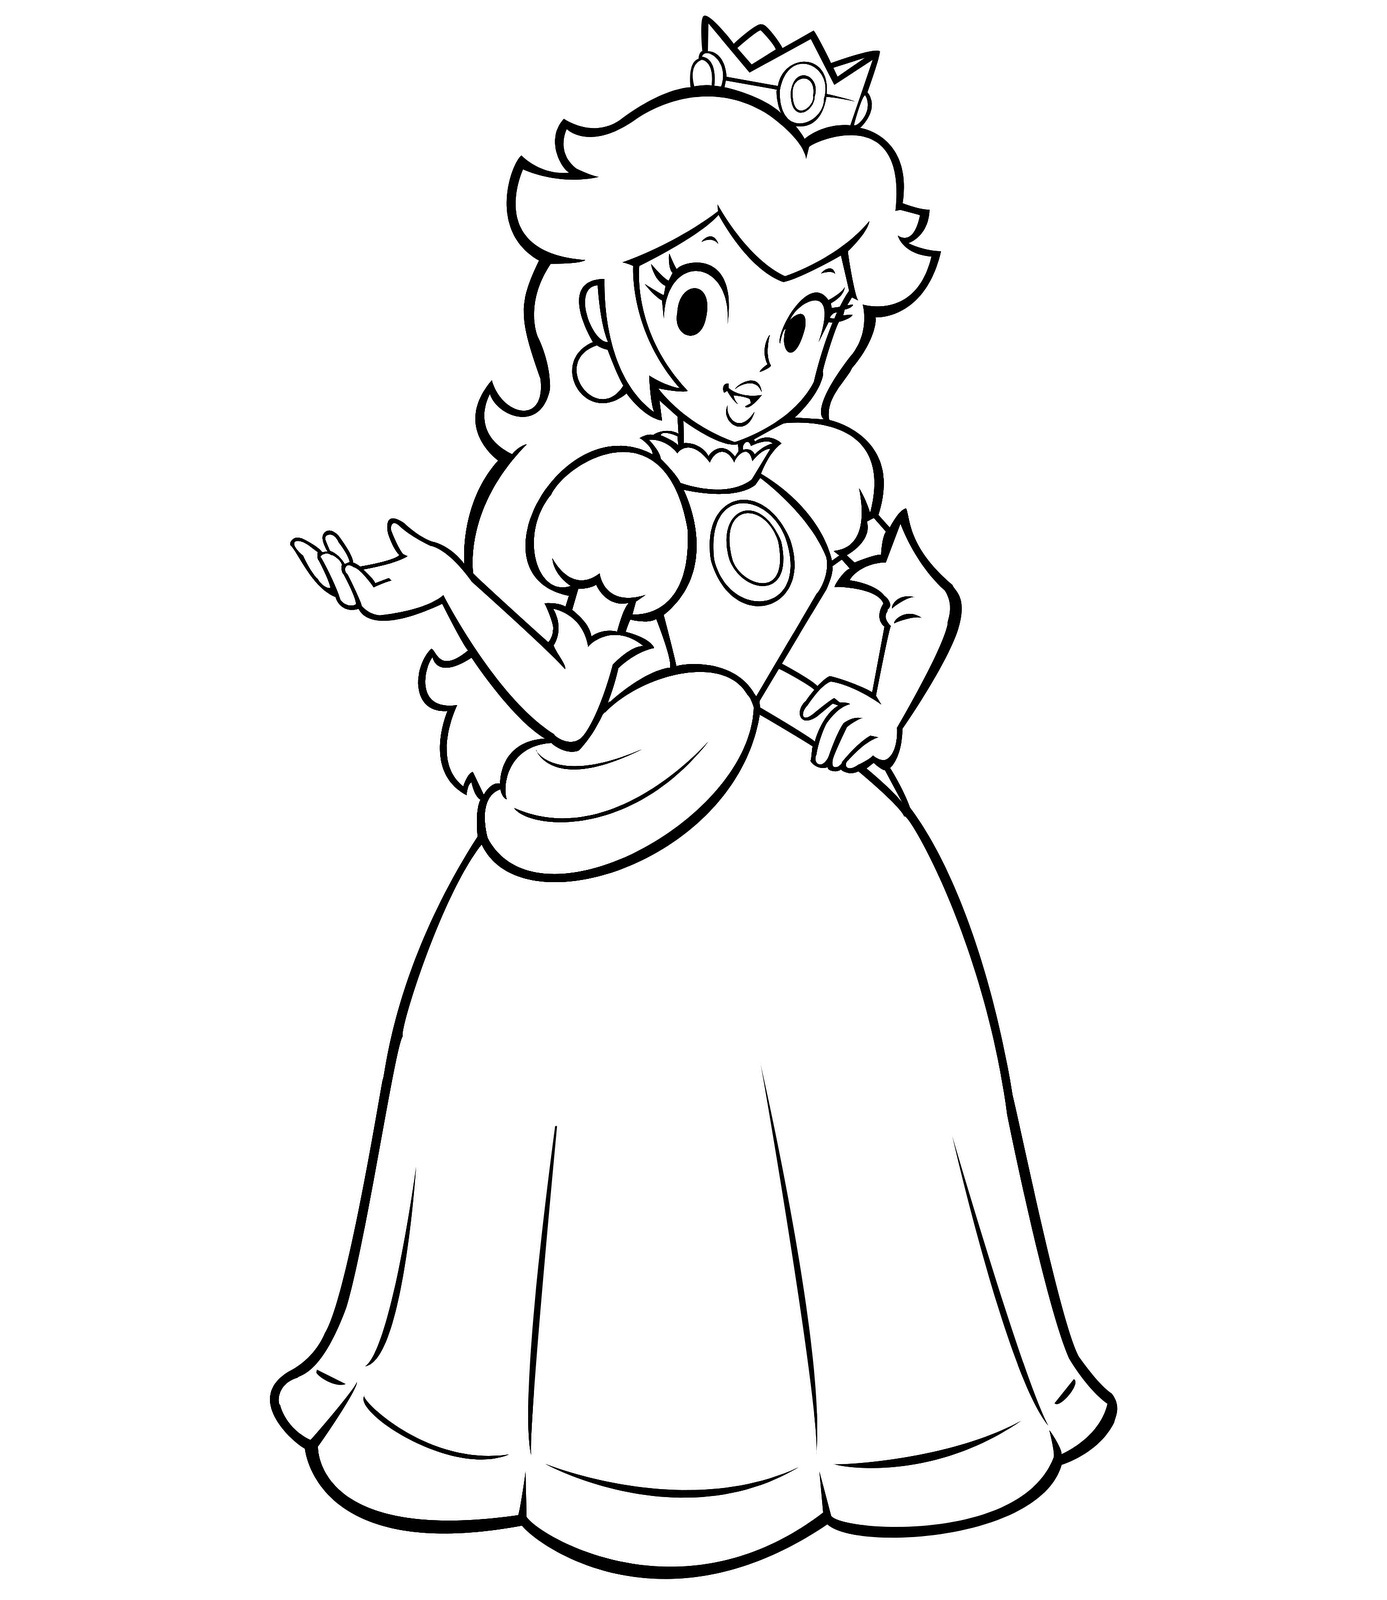 1387x1600 Princess In Ball Gown Dress Coloring Page